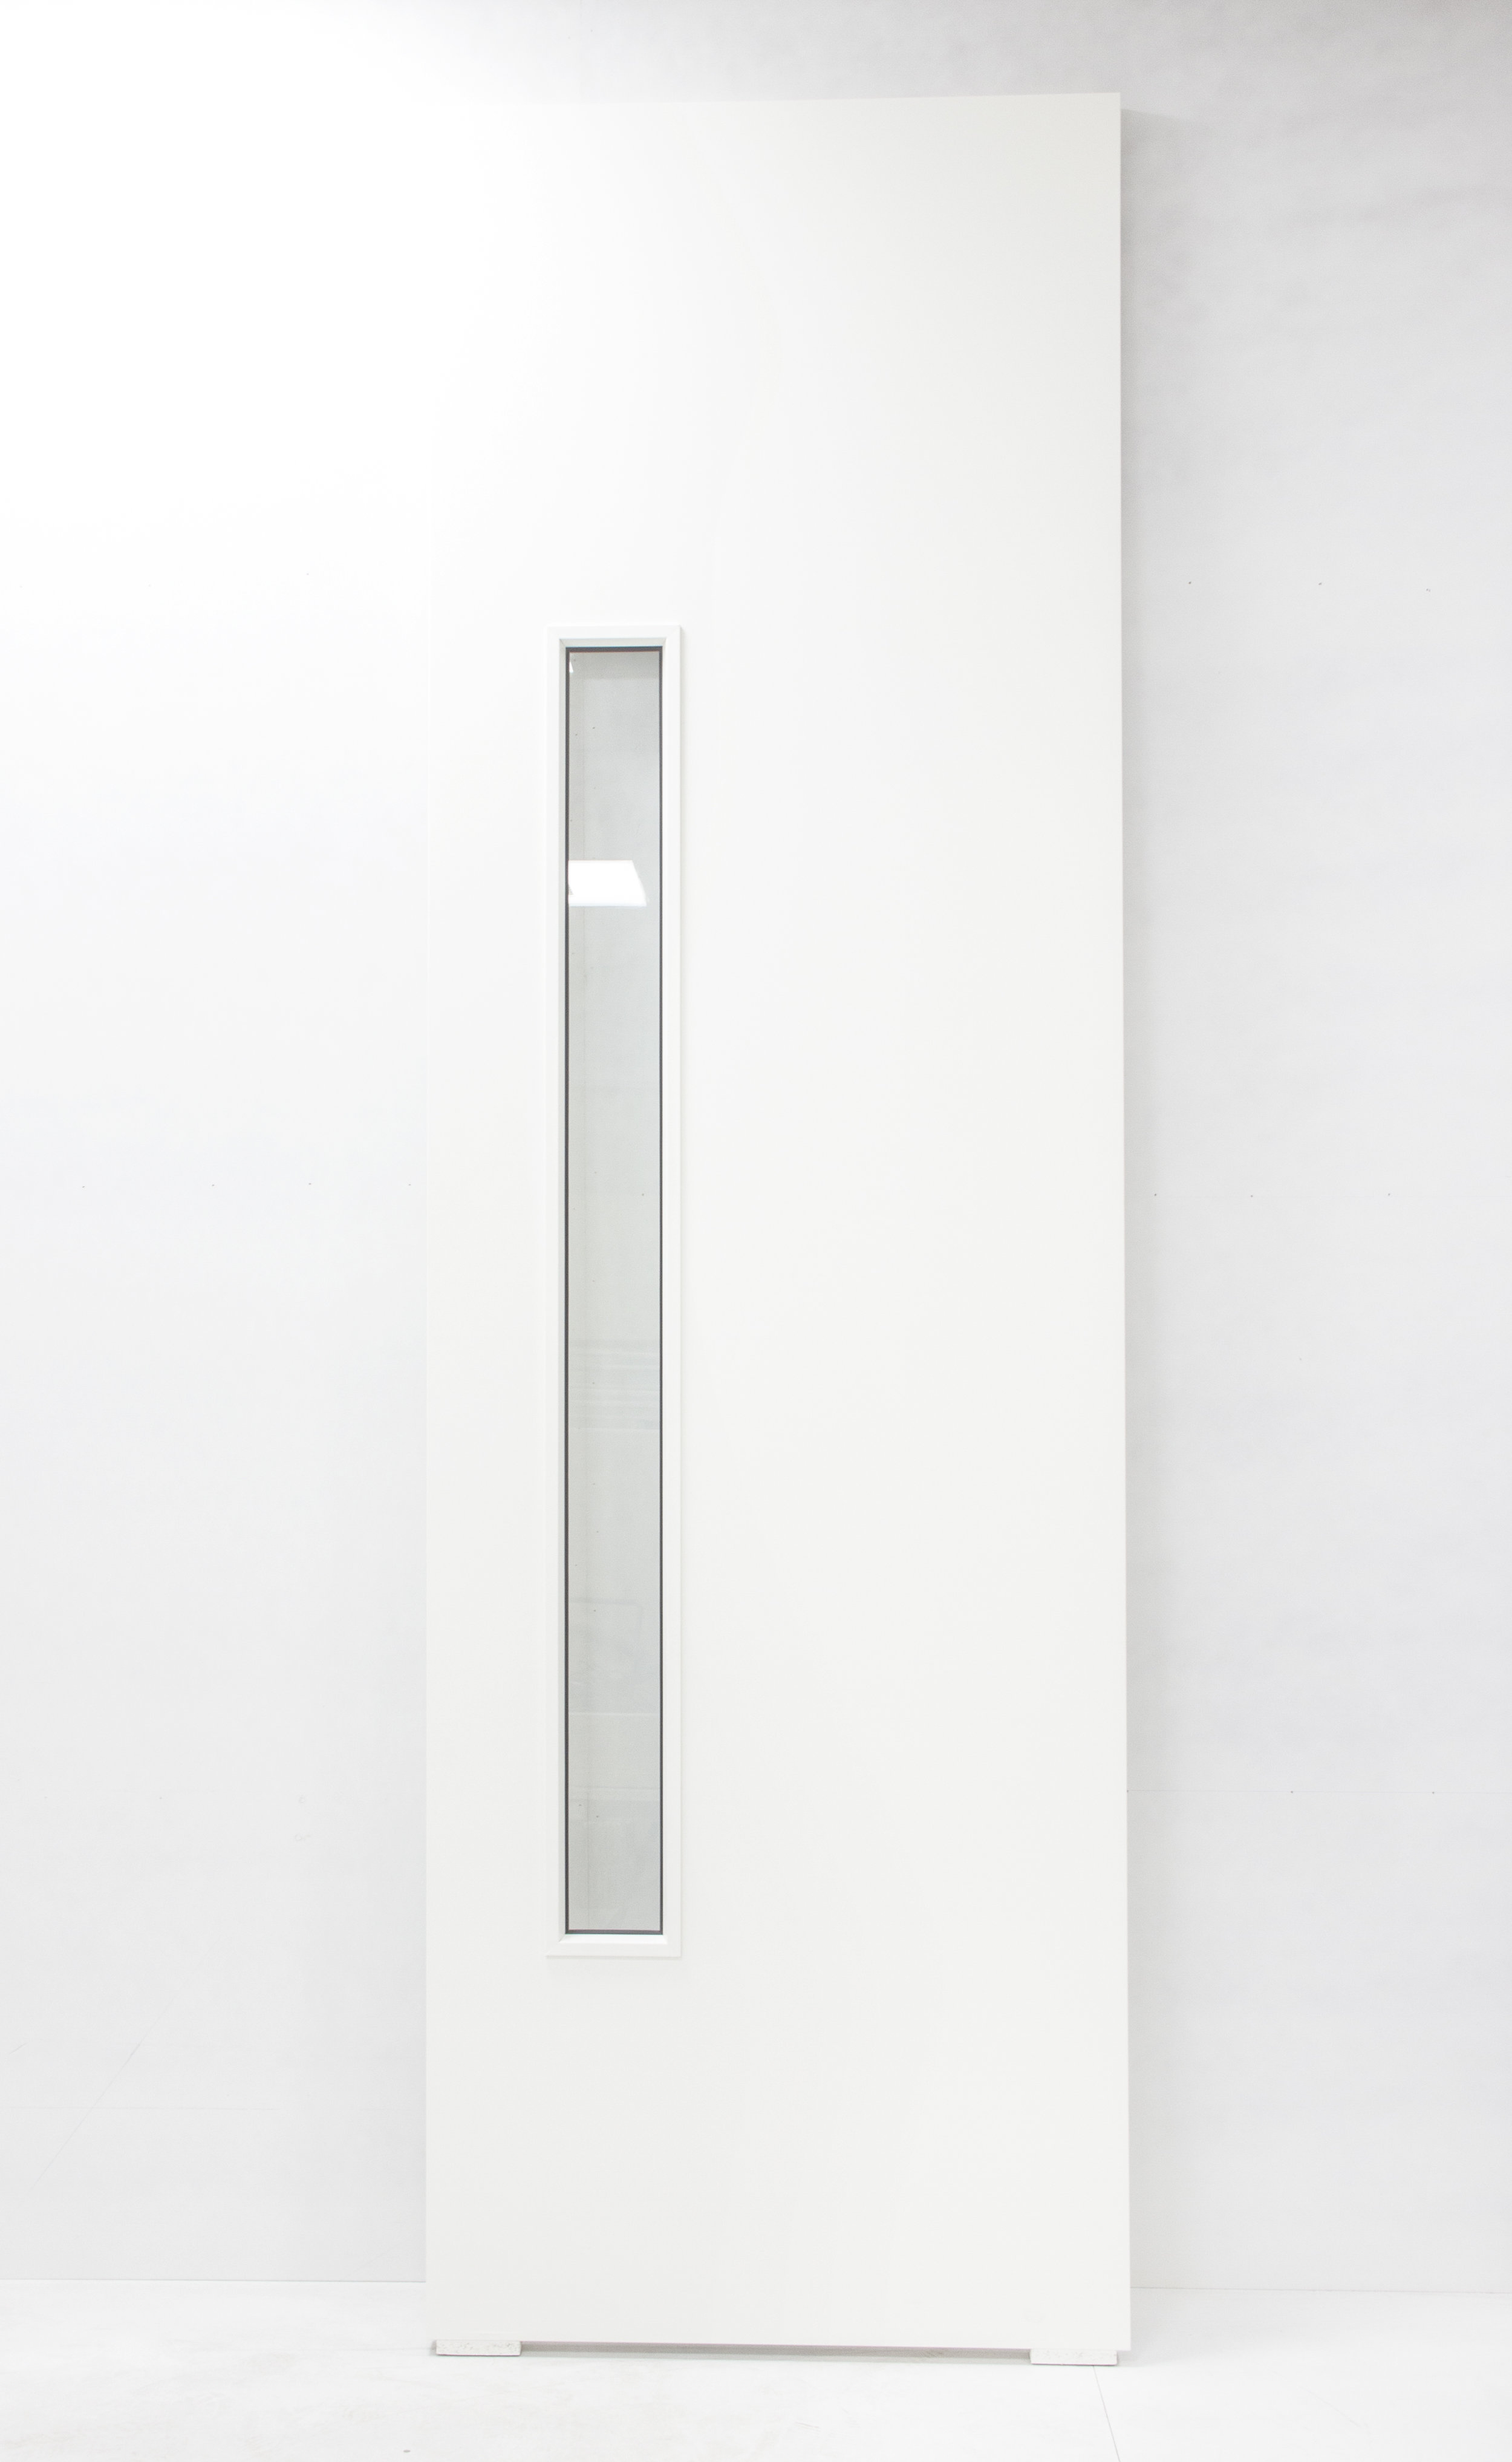 White laminate door with vision panel